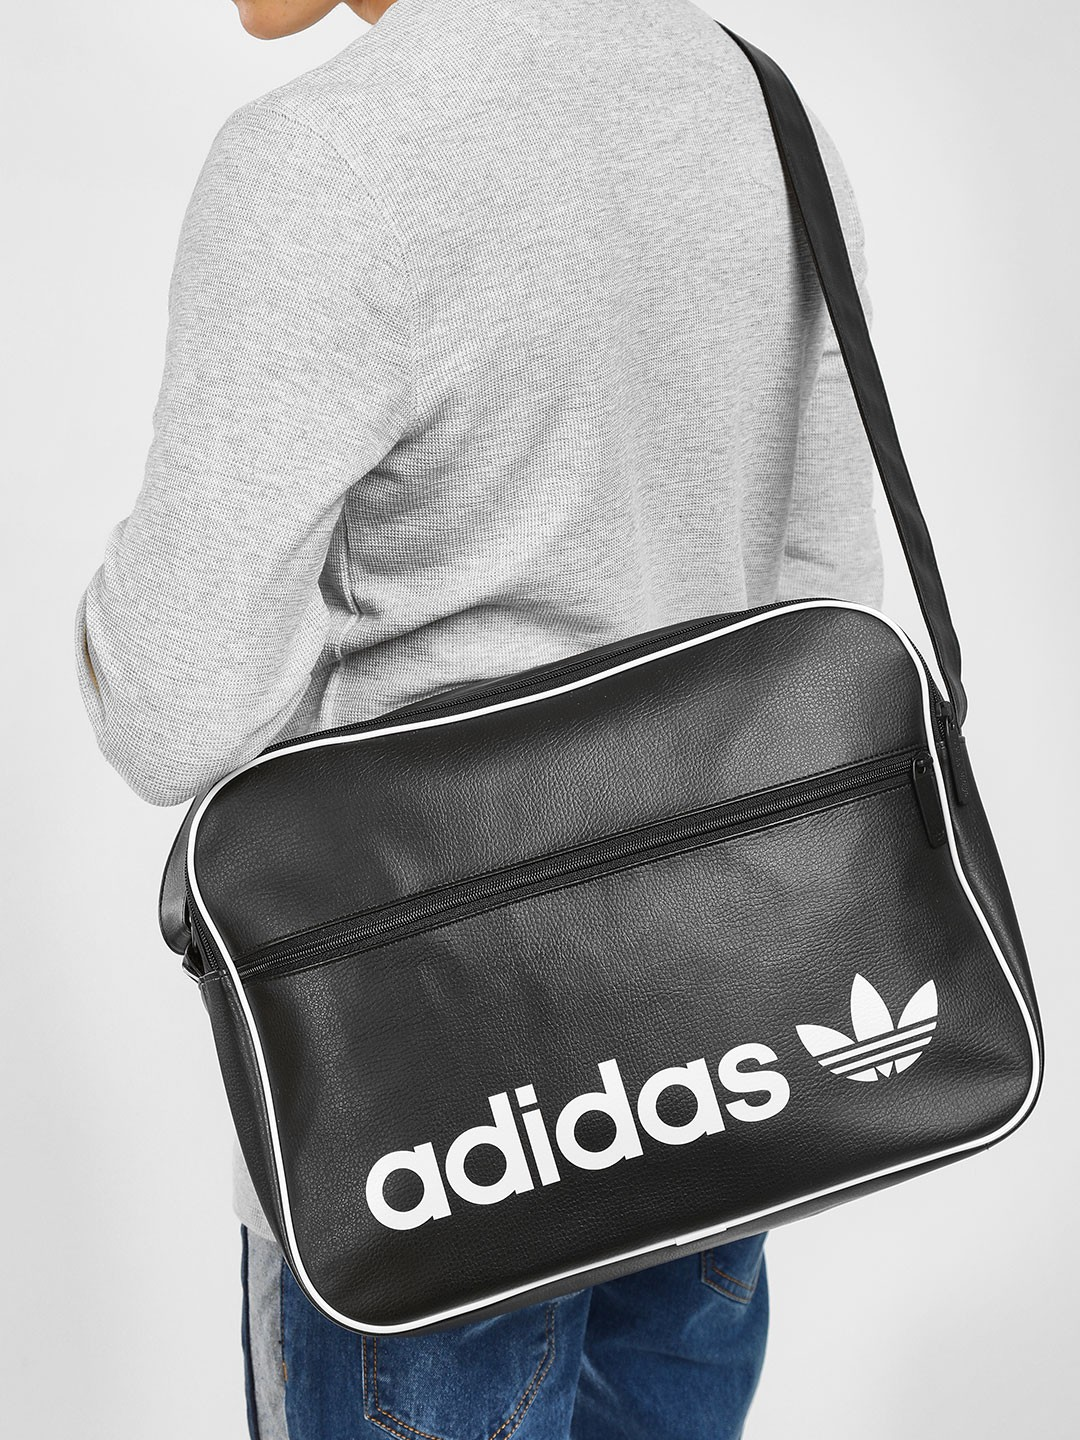 Adidas Originals Black Vintage Airliner Bag 1